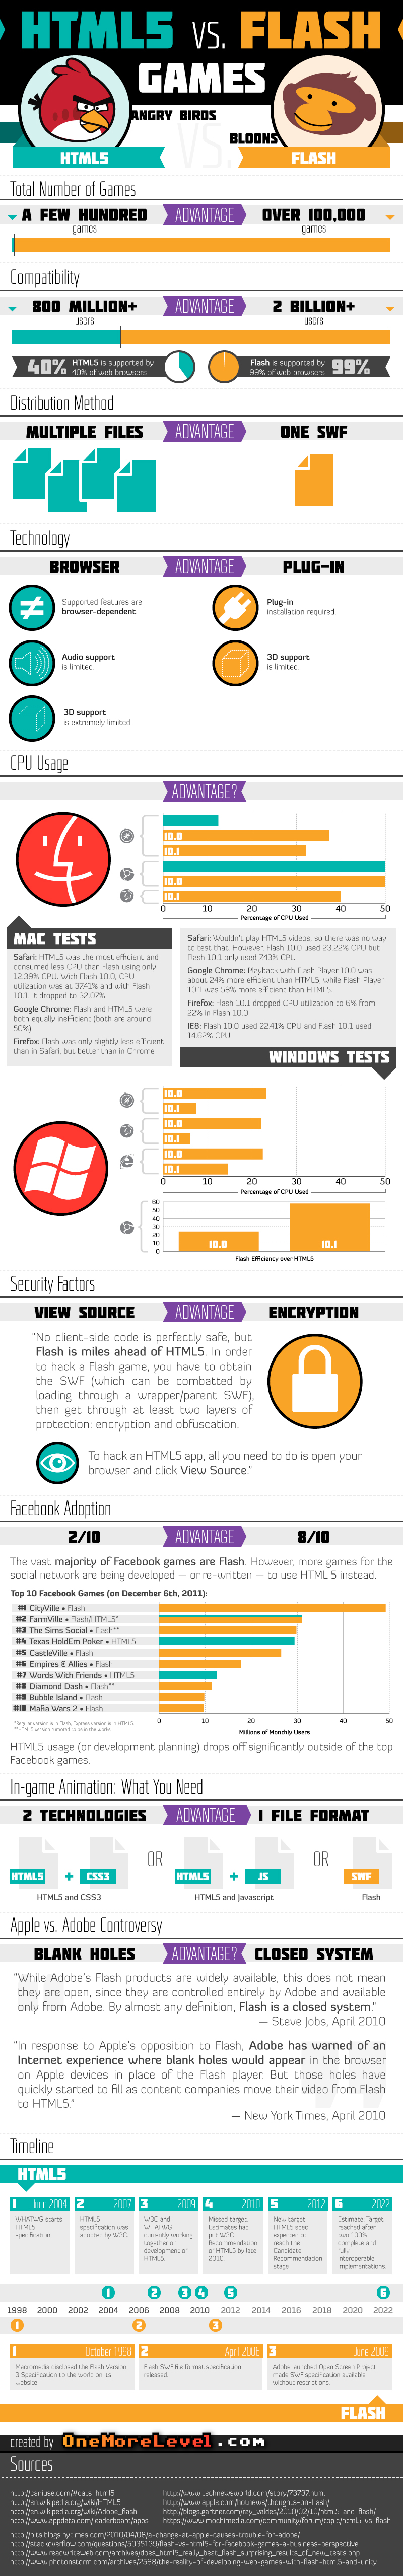 HTML5 is sexy, but Flash still rules when it comes to games [infographic]